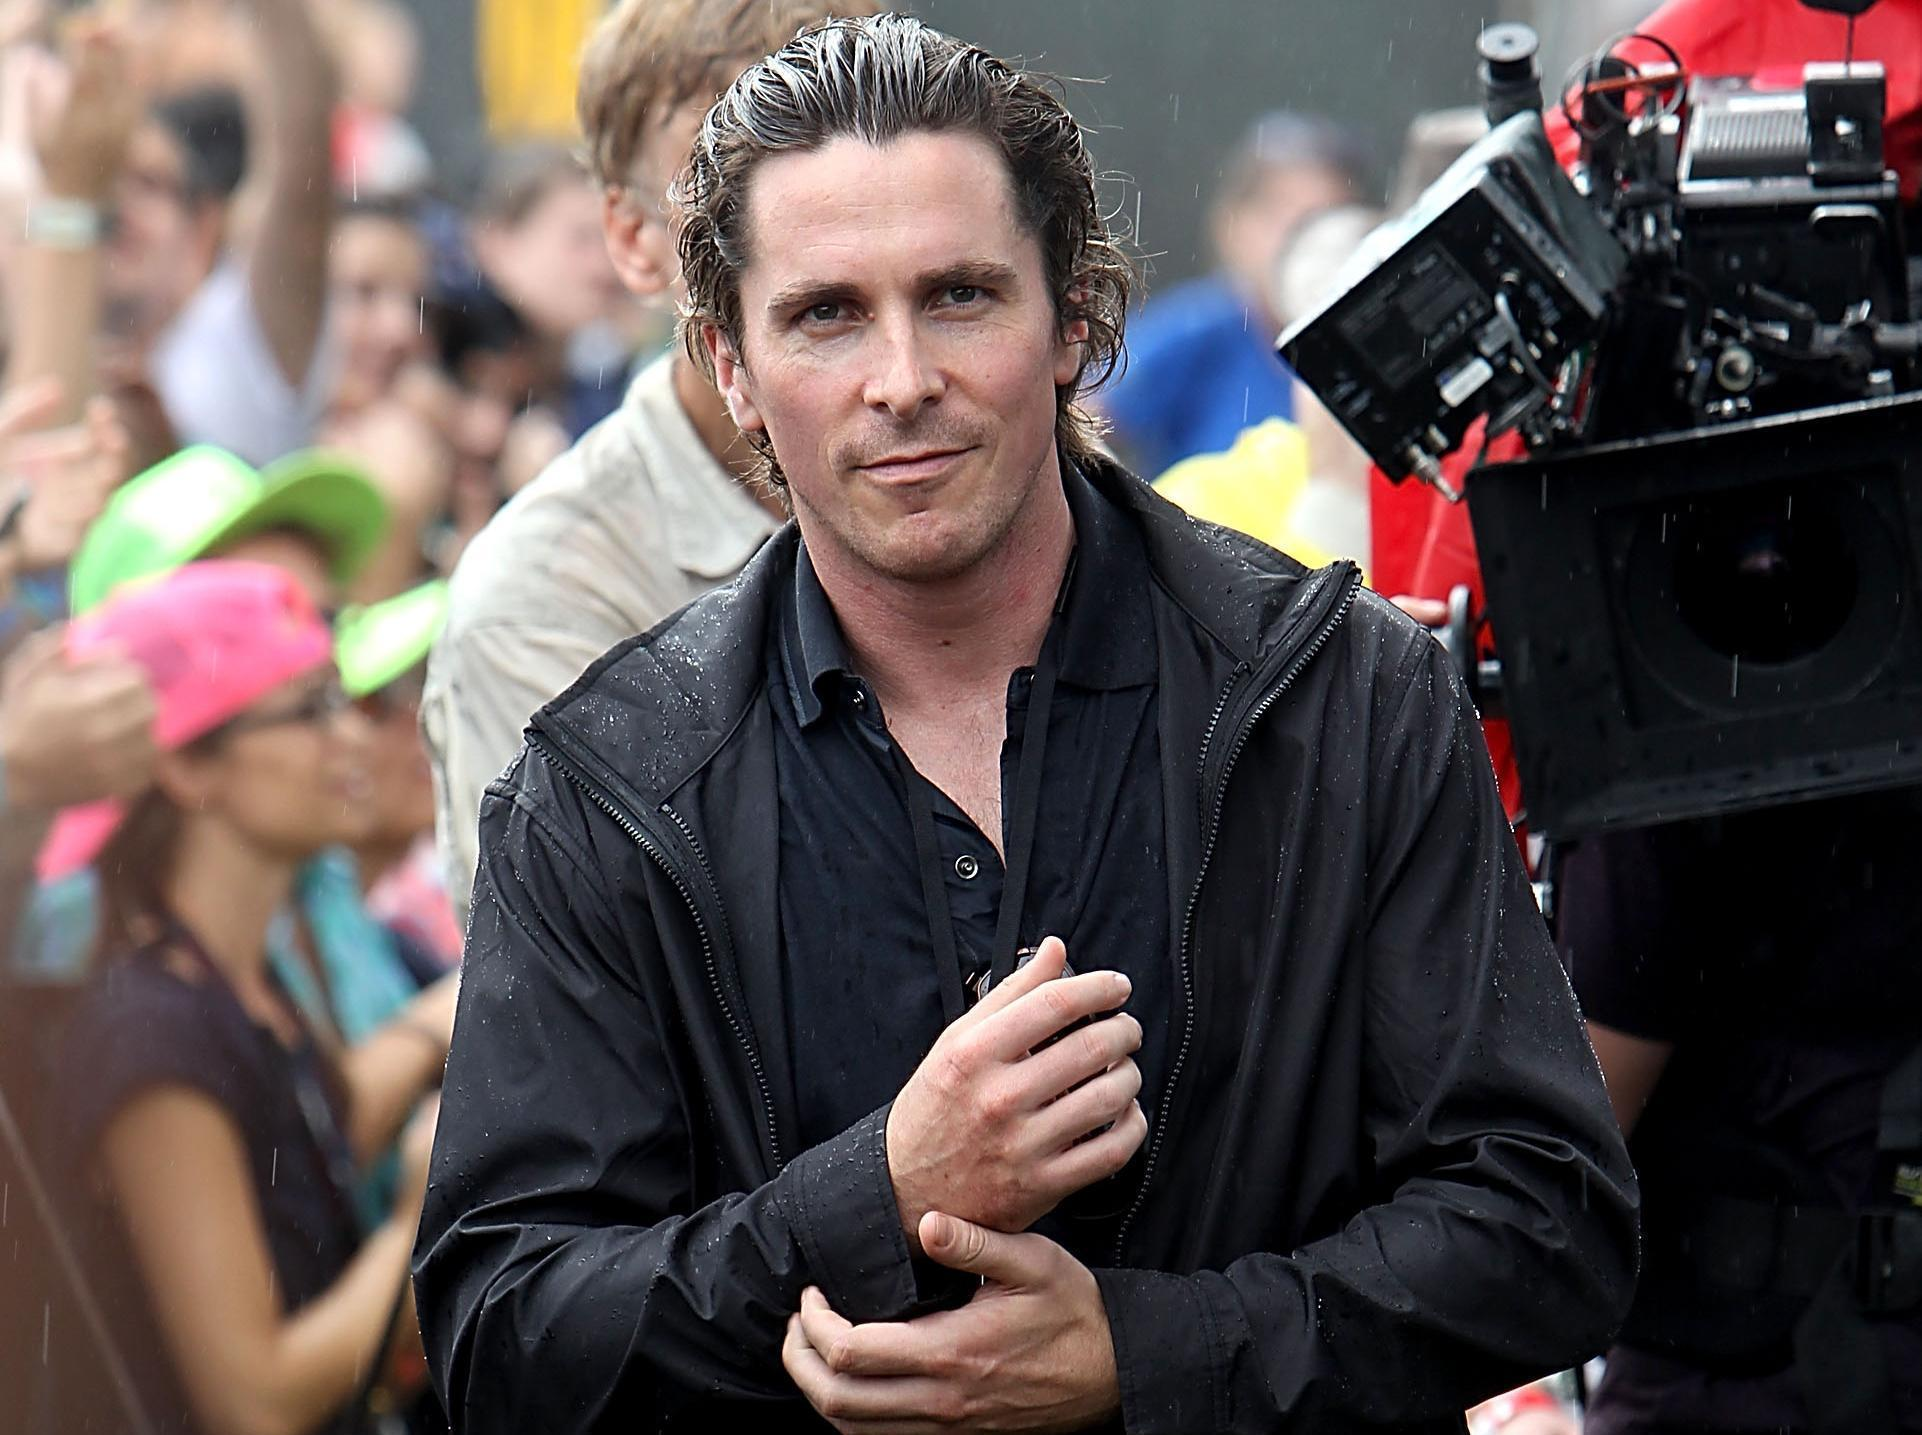 Christian Bale Disappointed In His Batman Performances [Video]